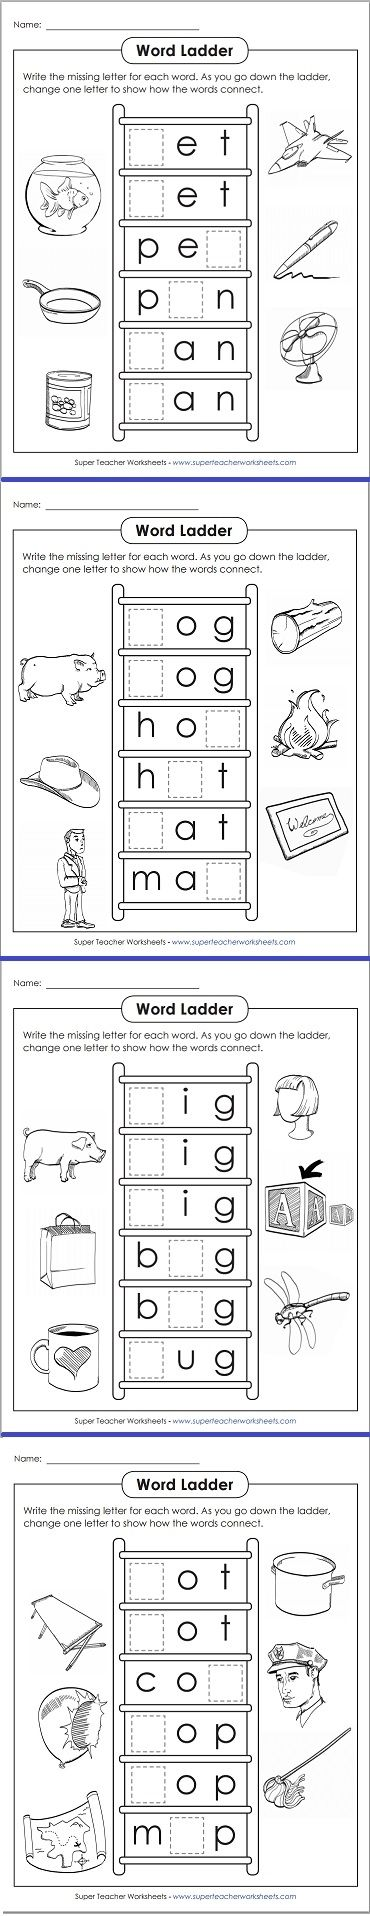 Take a look at these fun word ladders for phonics practice!